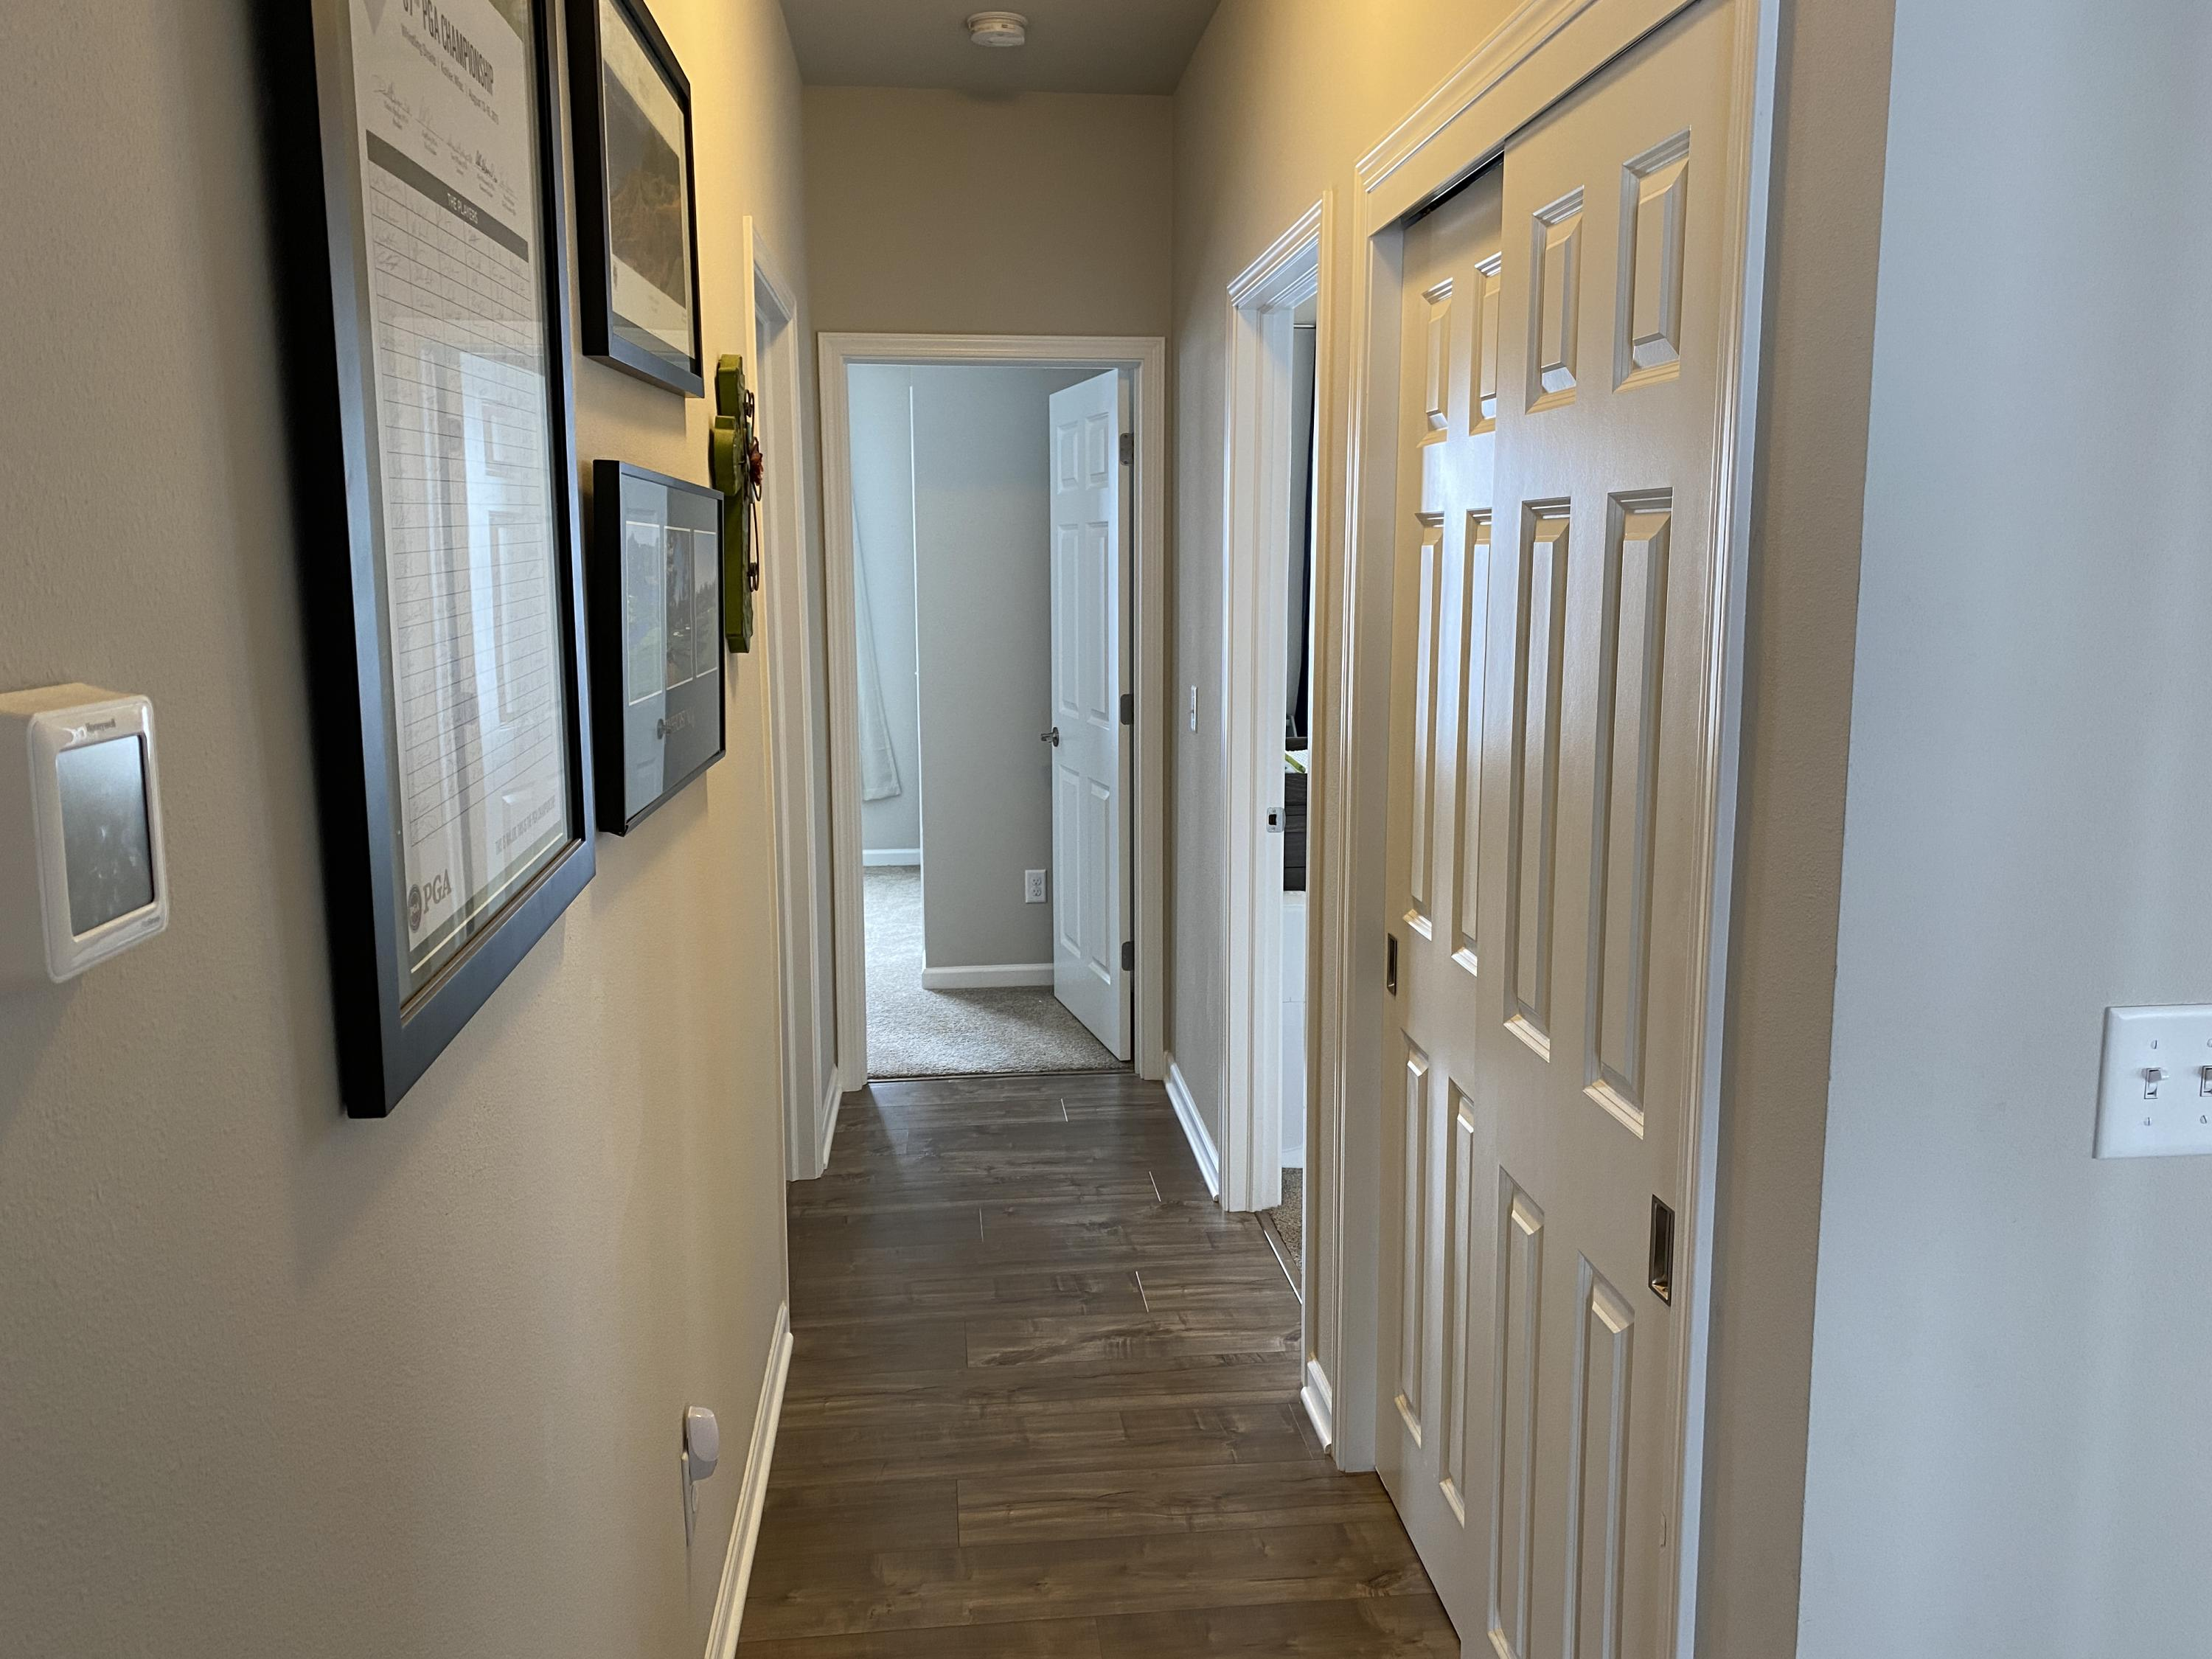 hall way to bedrooms